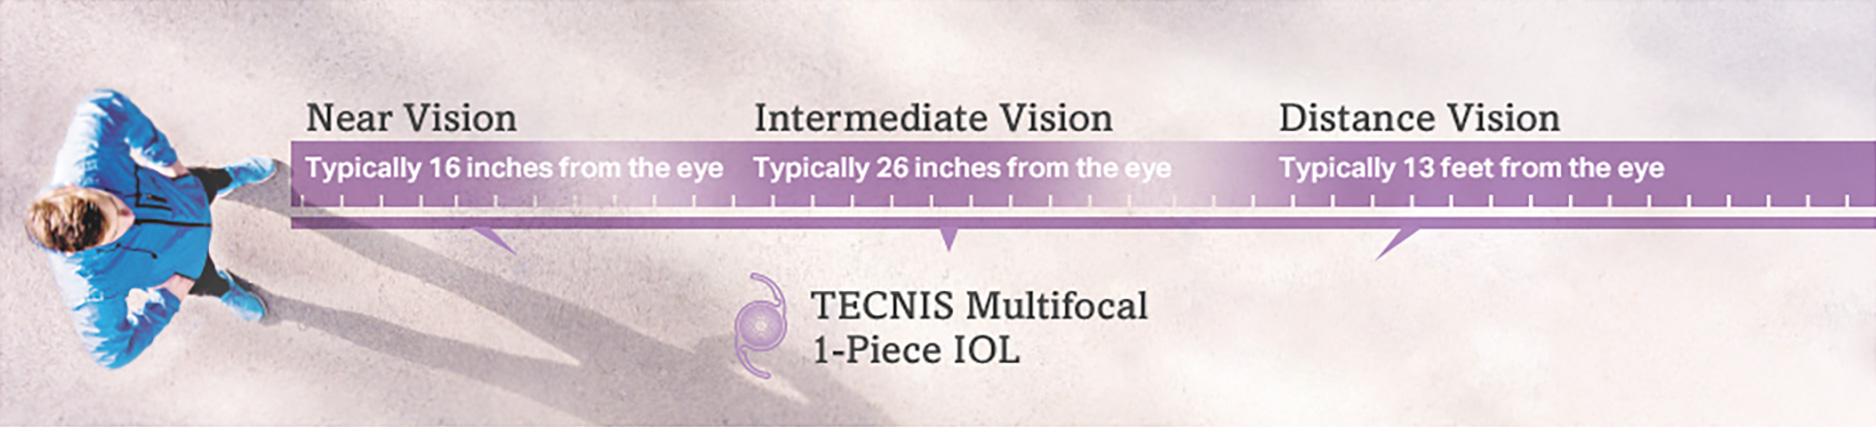 Man showing near, intermediate, and distance vision  with TECNIS® Multifocal 1-Piece IOL